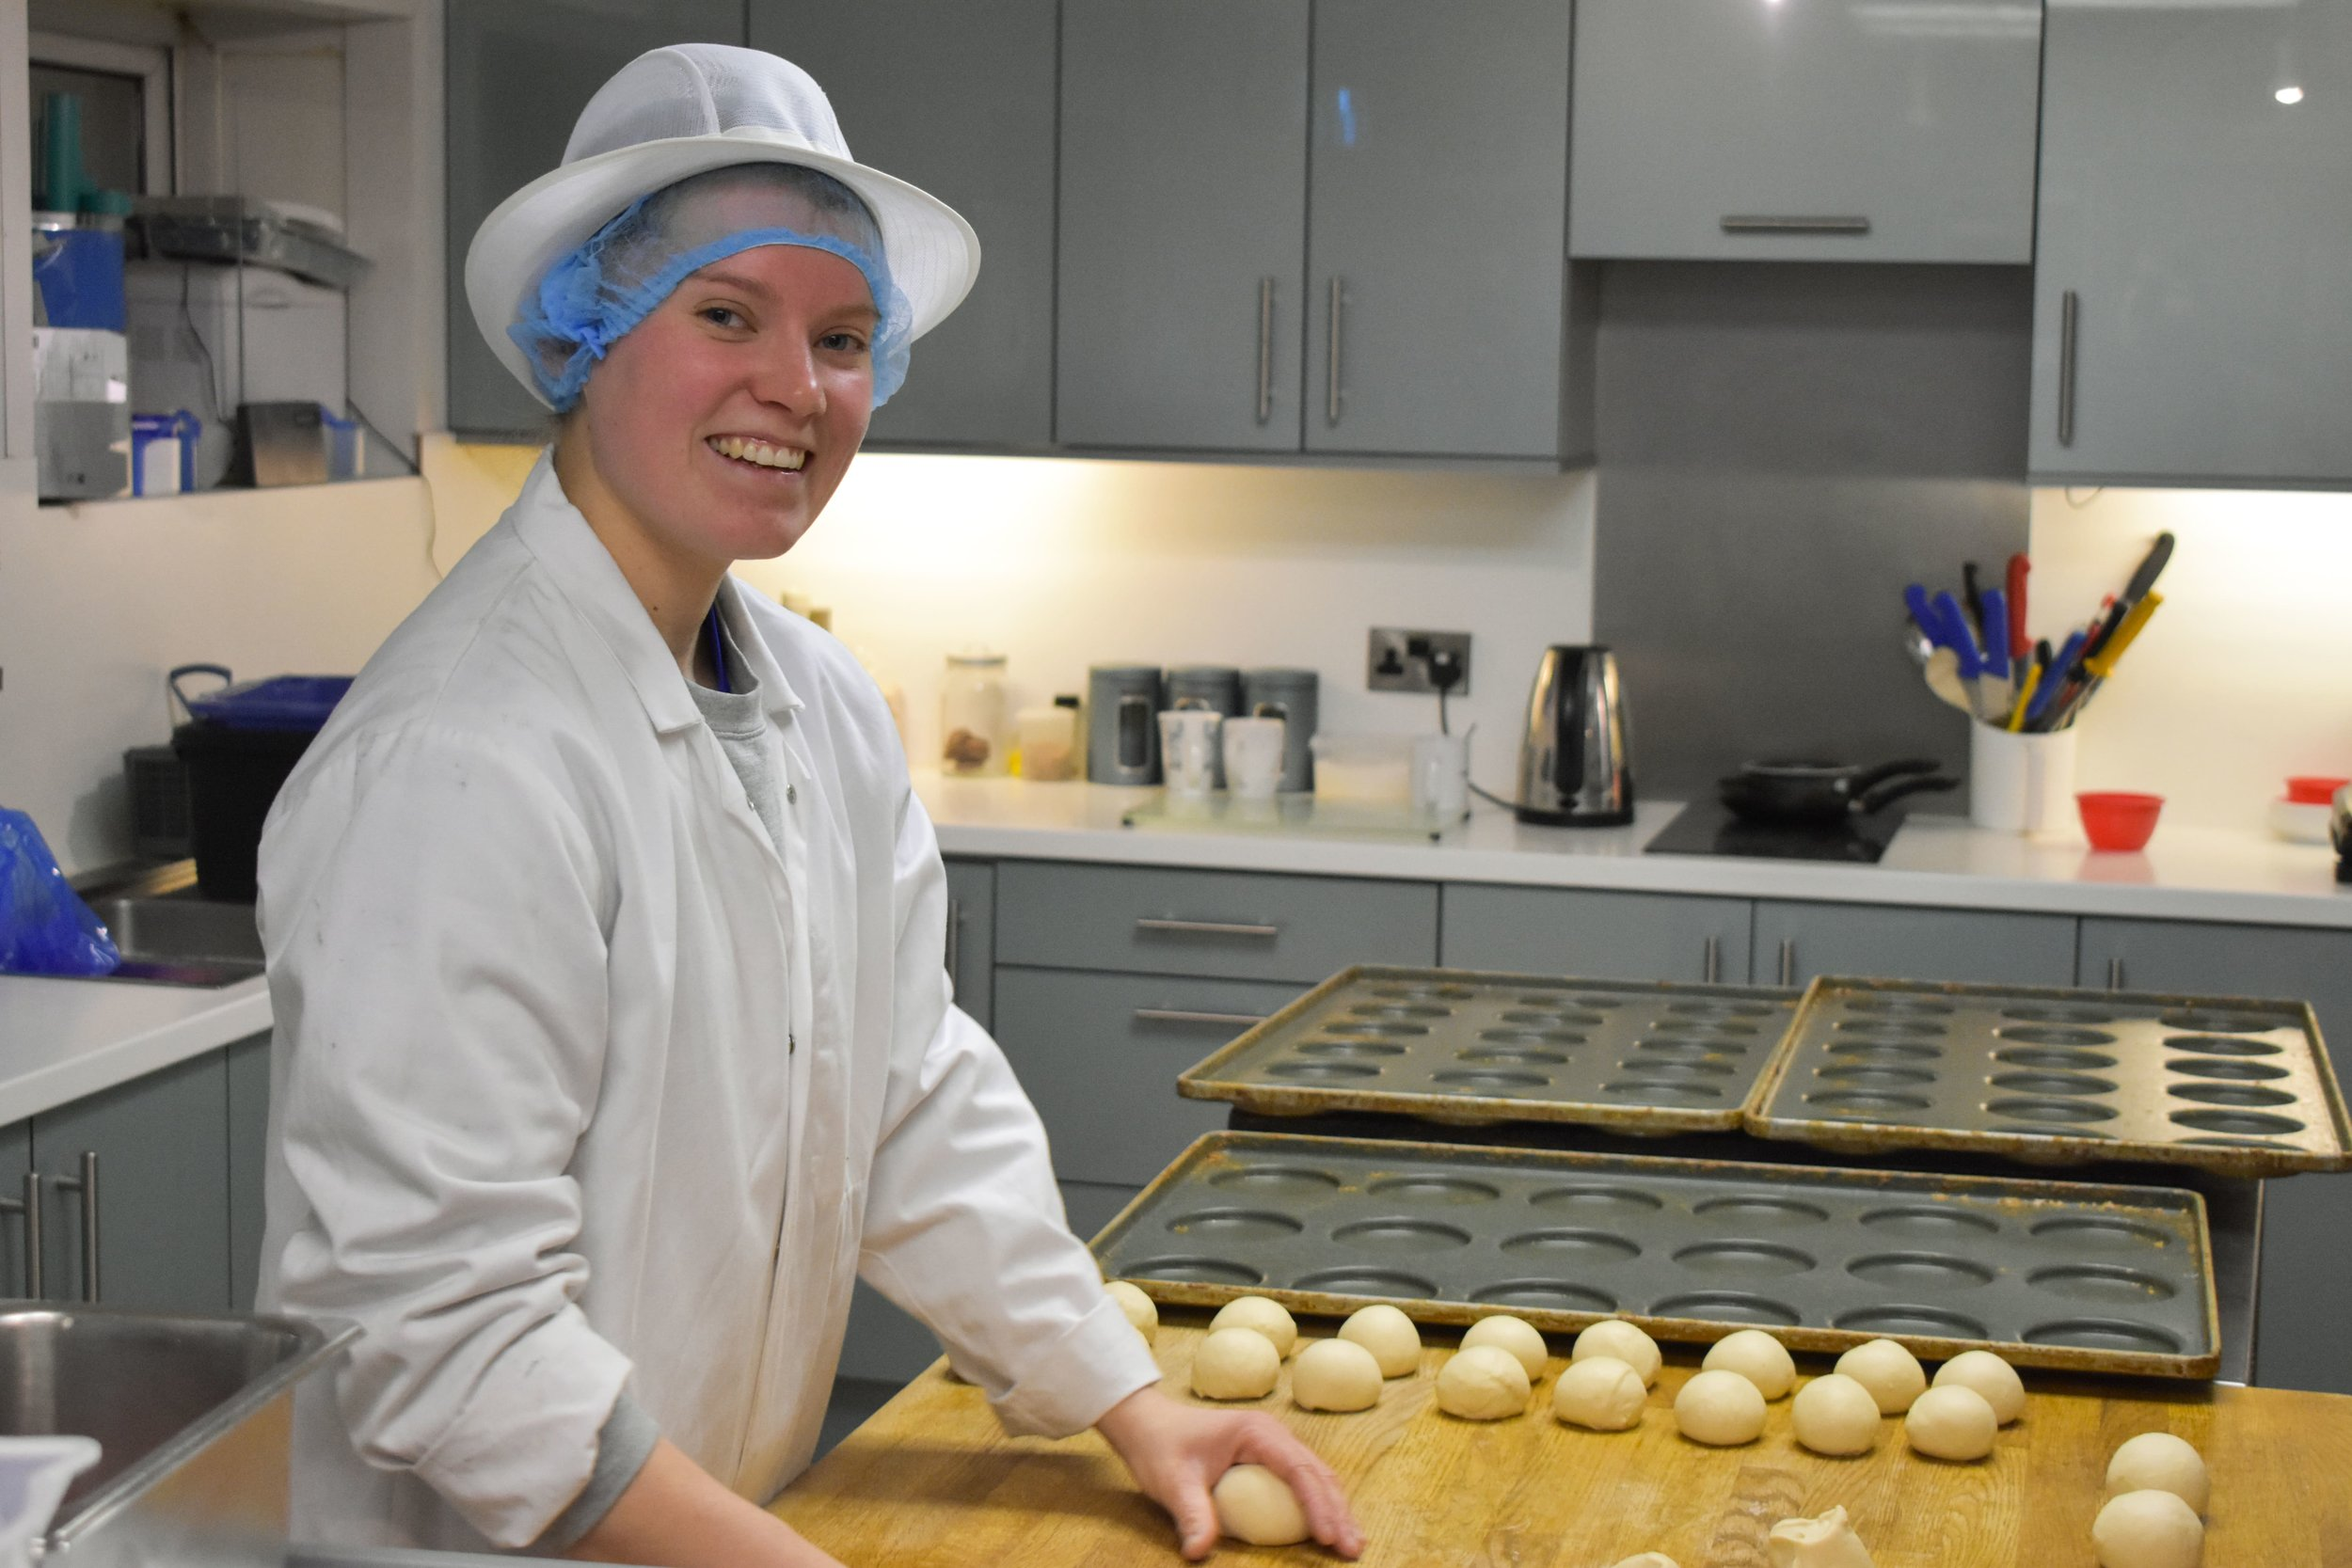 KATY ROBINSON - I have been at Fosters Bakery for around 5 months now as I started mid-November. After going to University and studying a Hospitality with Culinary Arts Degree, I knew I wanted to pursue my interest in food. I began in foodservice but my real interest was in product development. When I came to Fosters for my interview, I was mesmerised by the bakery and all the machinery and different types of bread they produced. After that, I knew it was the place I wanted to work.On a standard day, we receive requests off of customers who are asking for a specific product. My colleague Adam then creates or alters a recipe to fit the brief, this can involve making alterations to ingredients such as sugar, salt, whether they want it palm or soya free. My job involves weighing up ingredients for the samples ready to make the next morning. This can range from mini box loaves, brioche, bloomers, breakfast muffins to hot dog rolls.My role is very varied and I love that we are doing something different each day. Additionally, we may have requests from customers who want something tweaking in a product which they already take. For example, a customer has just requested a 'cleaner' brioche which contains no e-numbers or soya. Other aspects of my role involve trial and error, not necessarily requested by a customer but our ideas which we put to the sales team. For example, I made some white rolls with added Christmas themed chutneys in last week to see if they could work for a special Christmas roll!